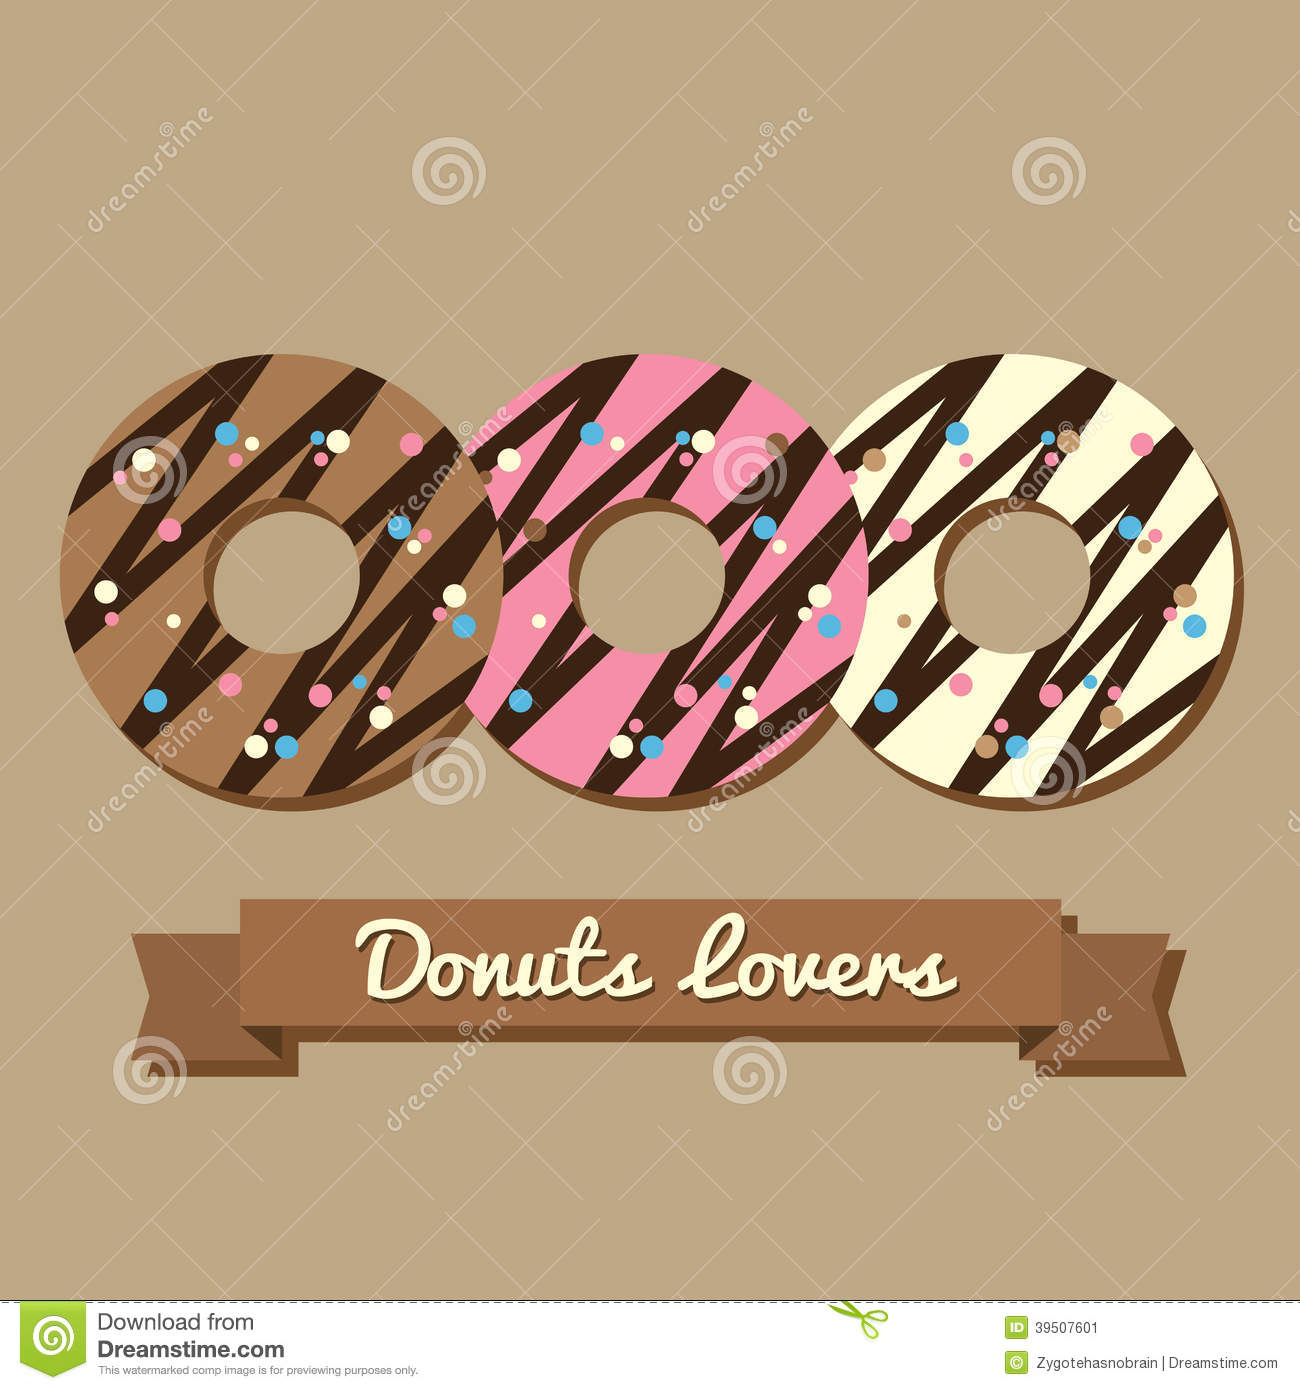 Donuts Lovers